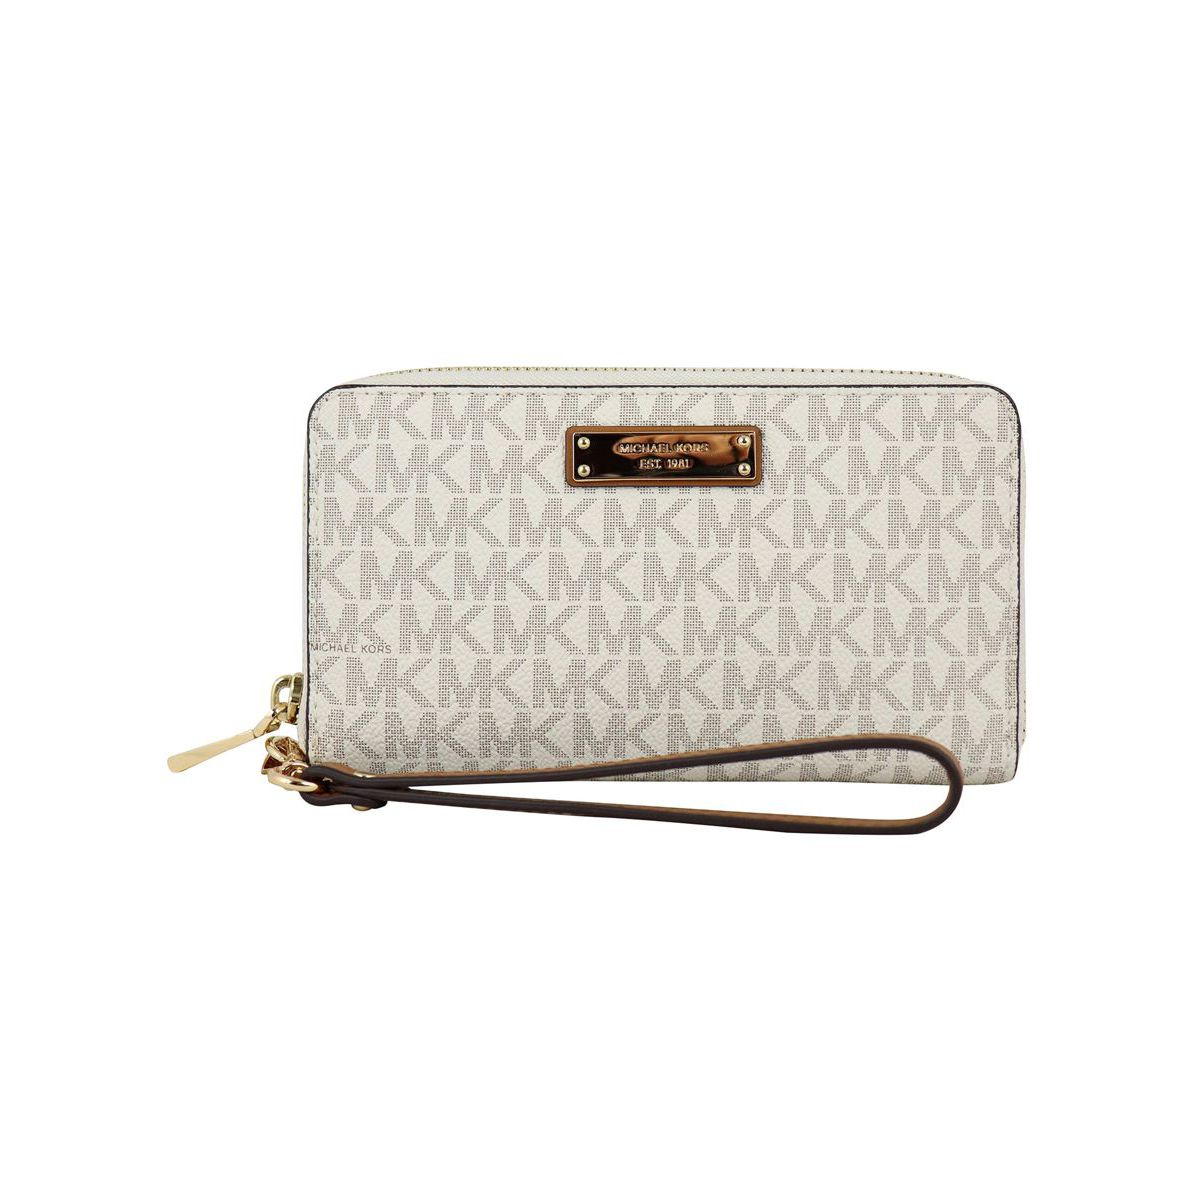 FLAT CASE wallet with detachable bracelet Vanilla Michael Kors